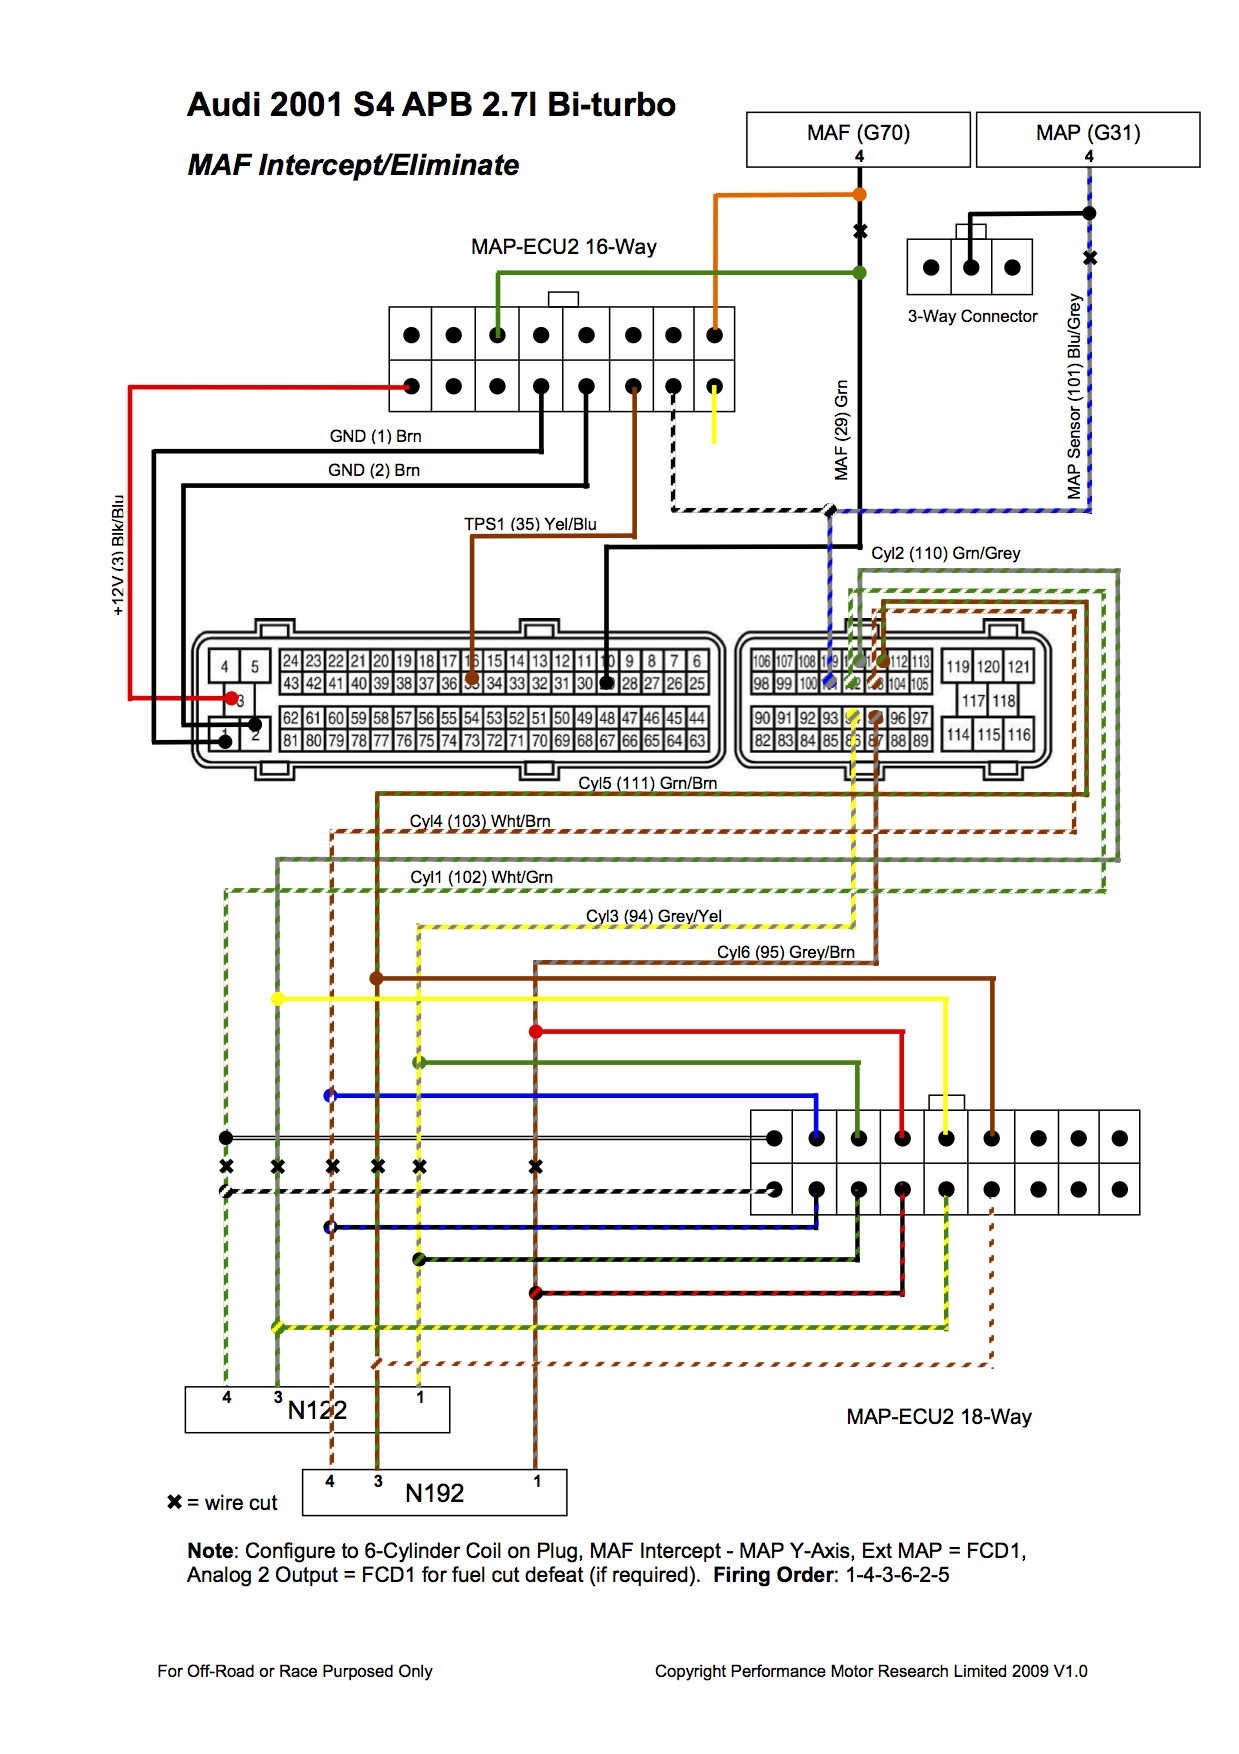 2002 dodge ram 1500 stereo wiring diagram Collection-1995 Dodge Ram 1500 Transmission Wiring Diagram Best 2002 Dodge Ram 2500 Radio Wiring Diagram Wiring Solutions 18-g